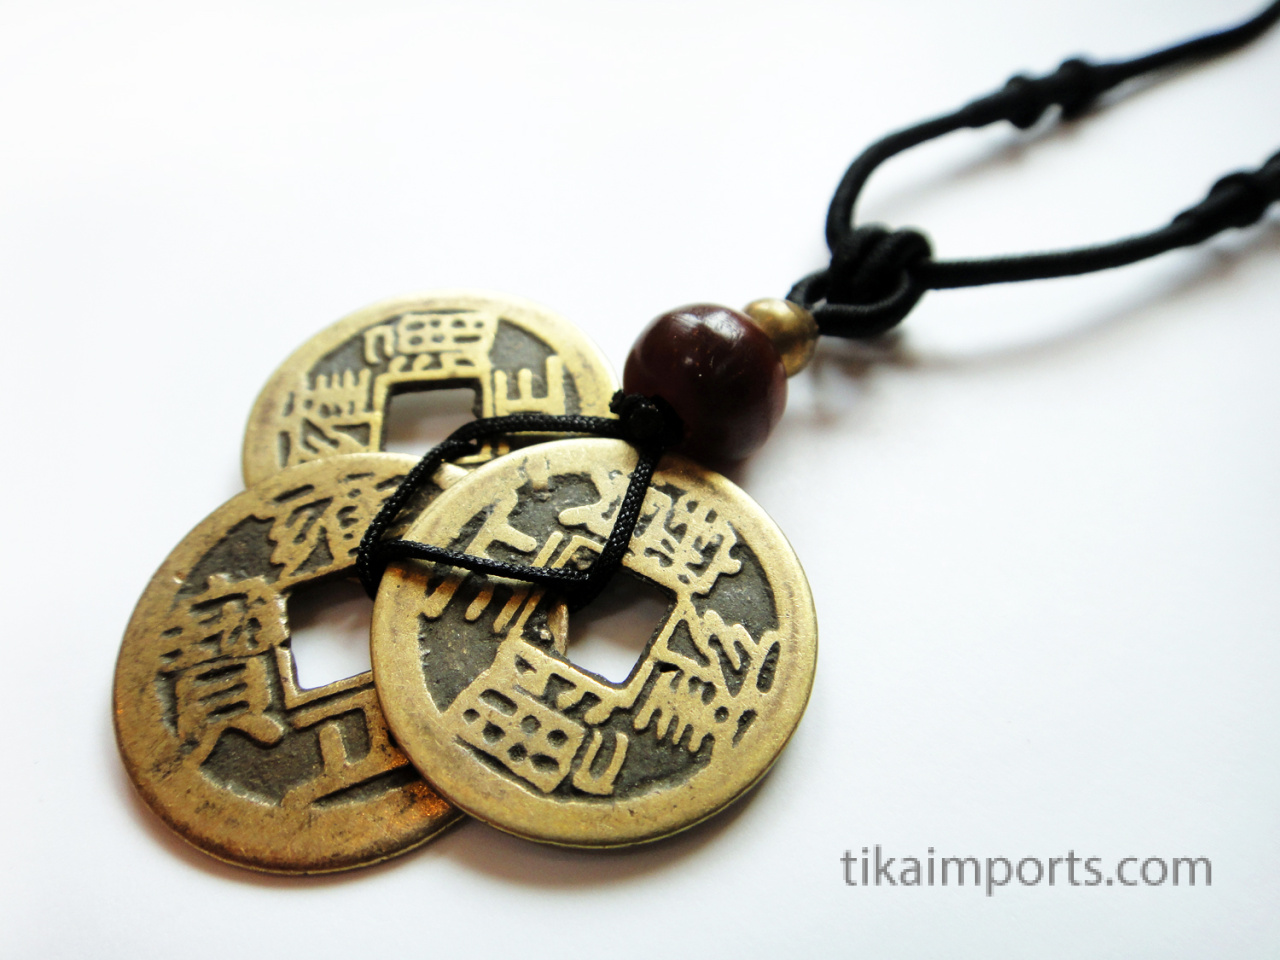 3 coin necklace mix match tika imports black adjustable cord necklace with pendant made from three brass chinese coin replicas horn mozeypictures Choice Image